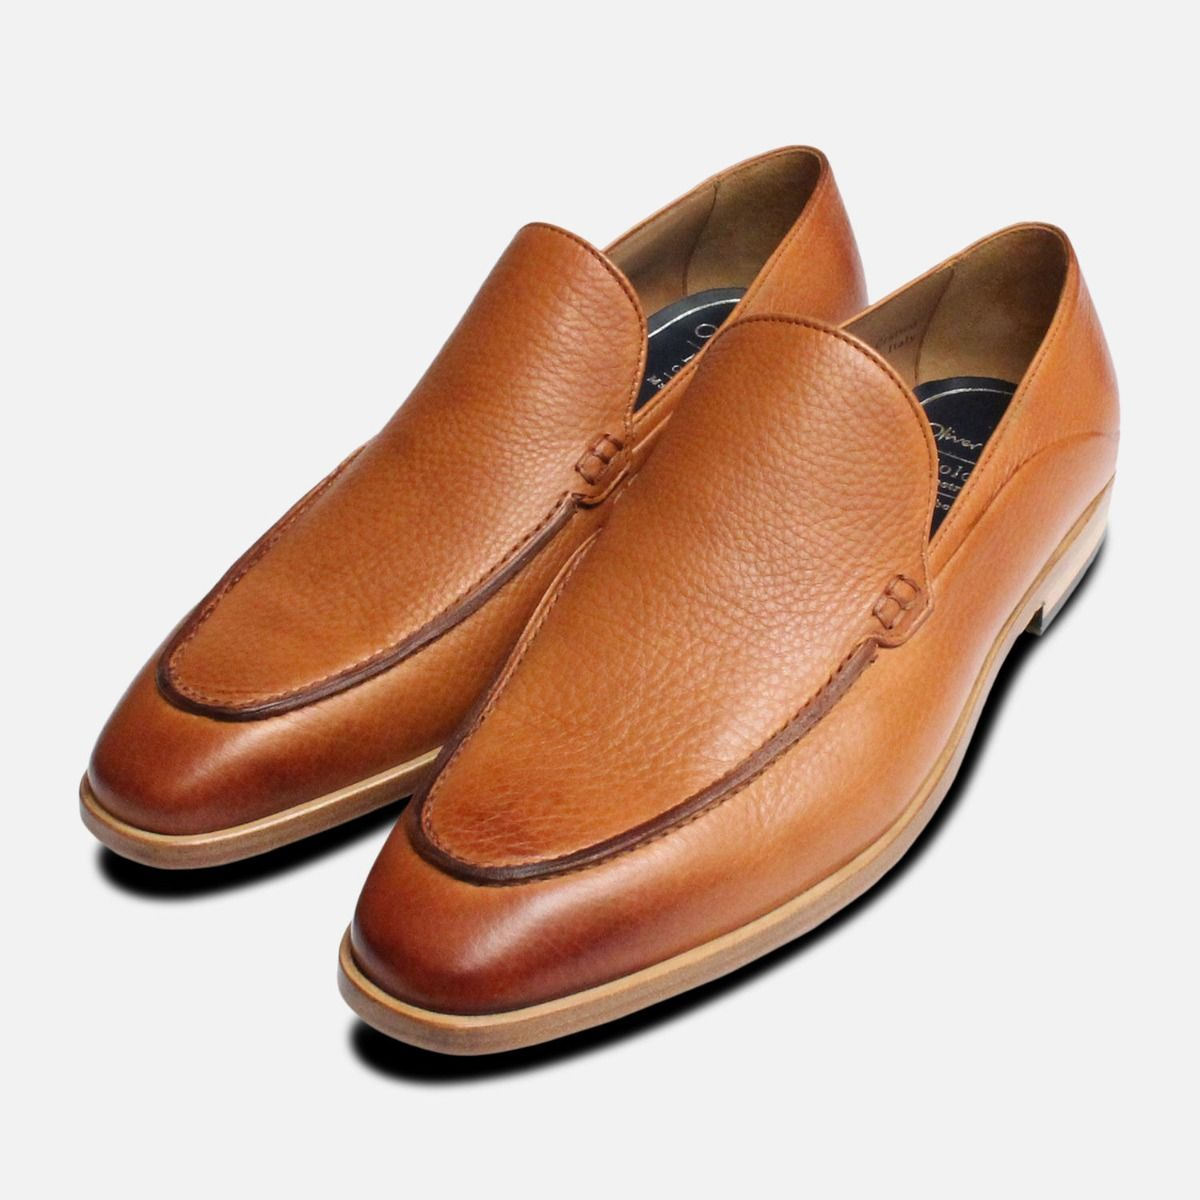 f1637d1d8 Brown Bologna Construction Loafers by Oliver Sweeney